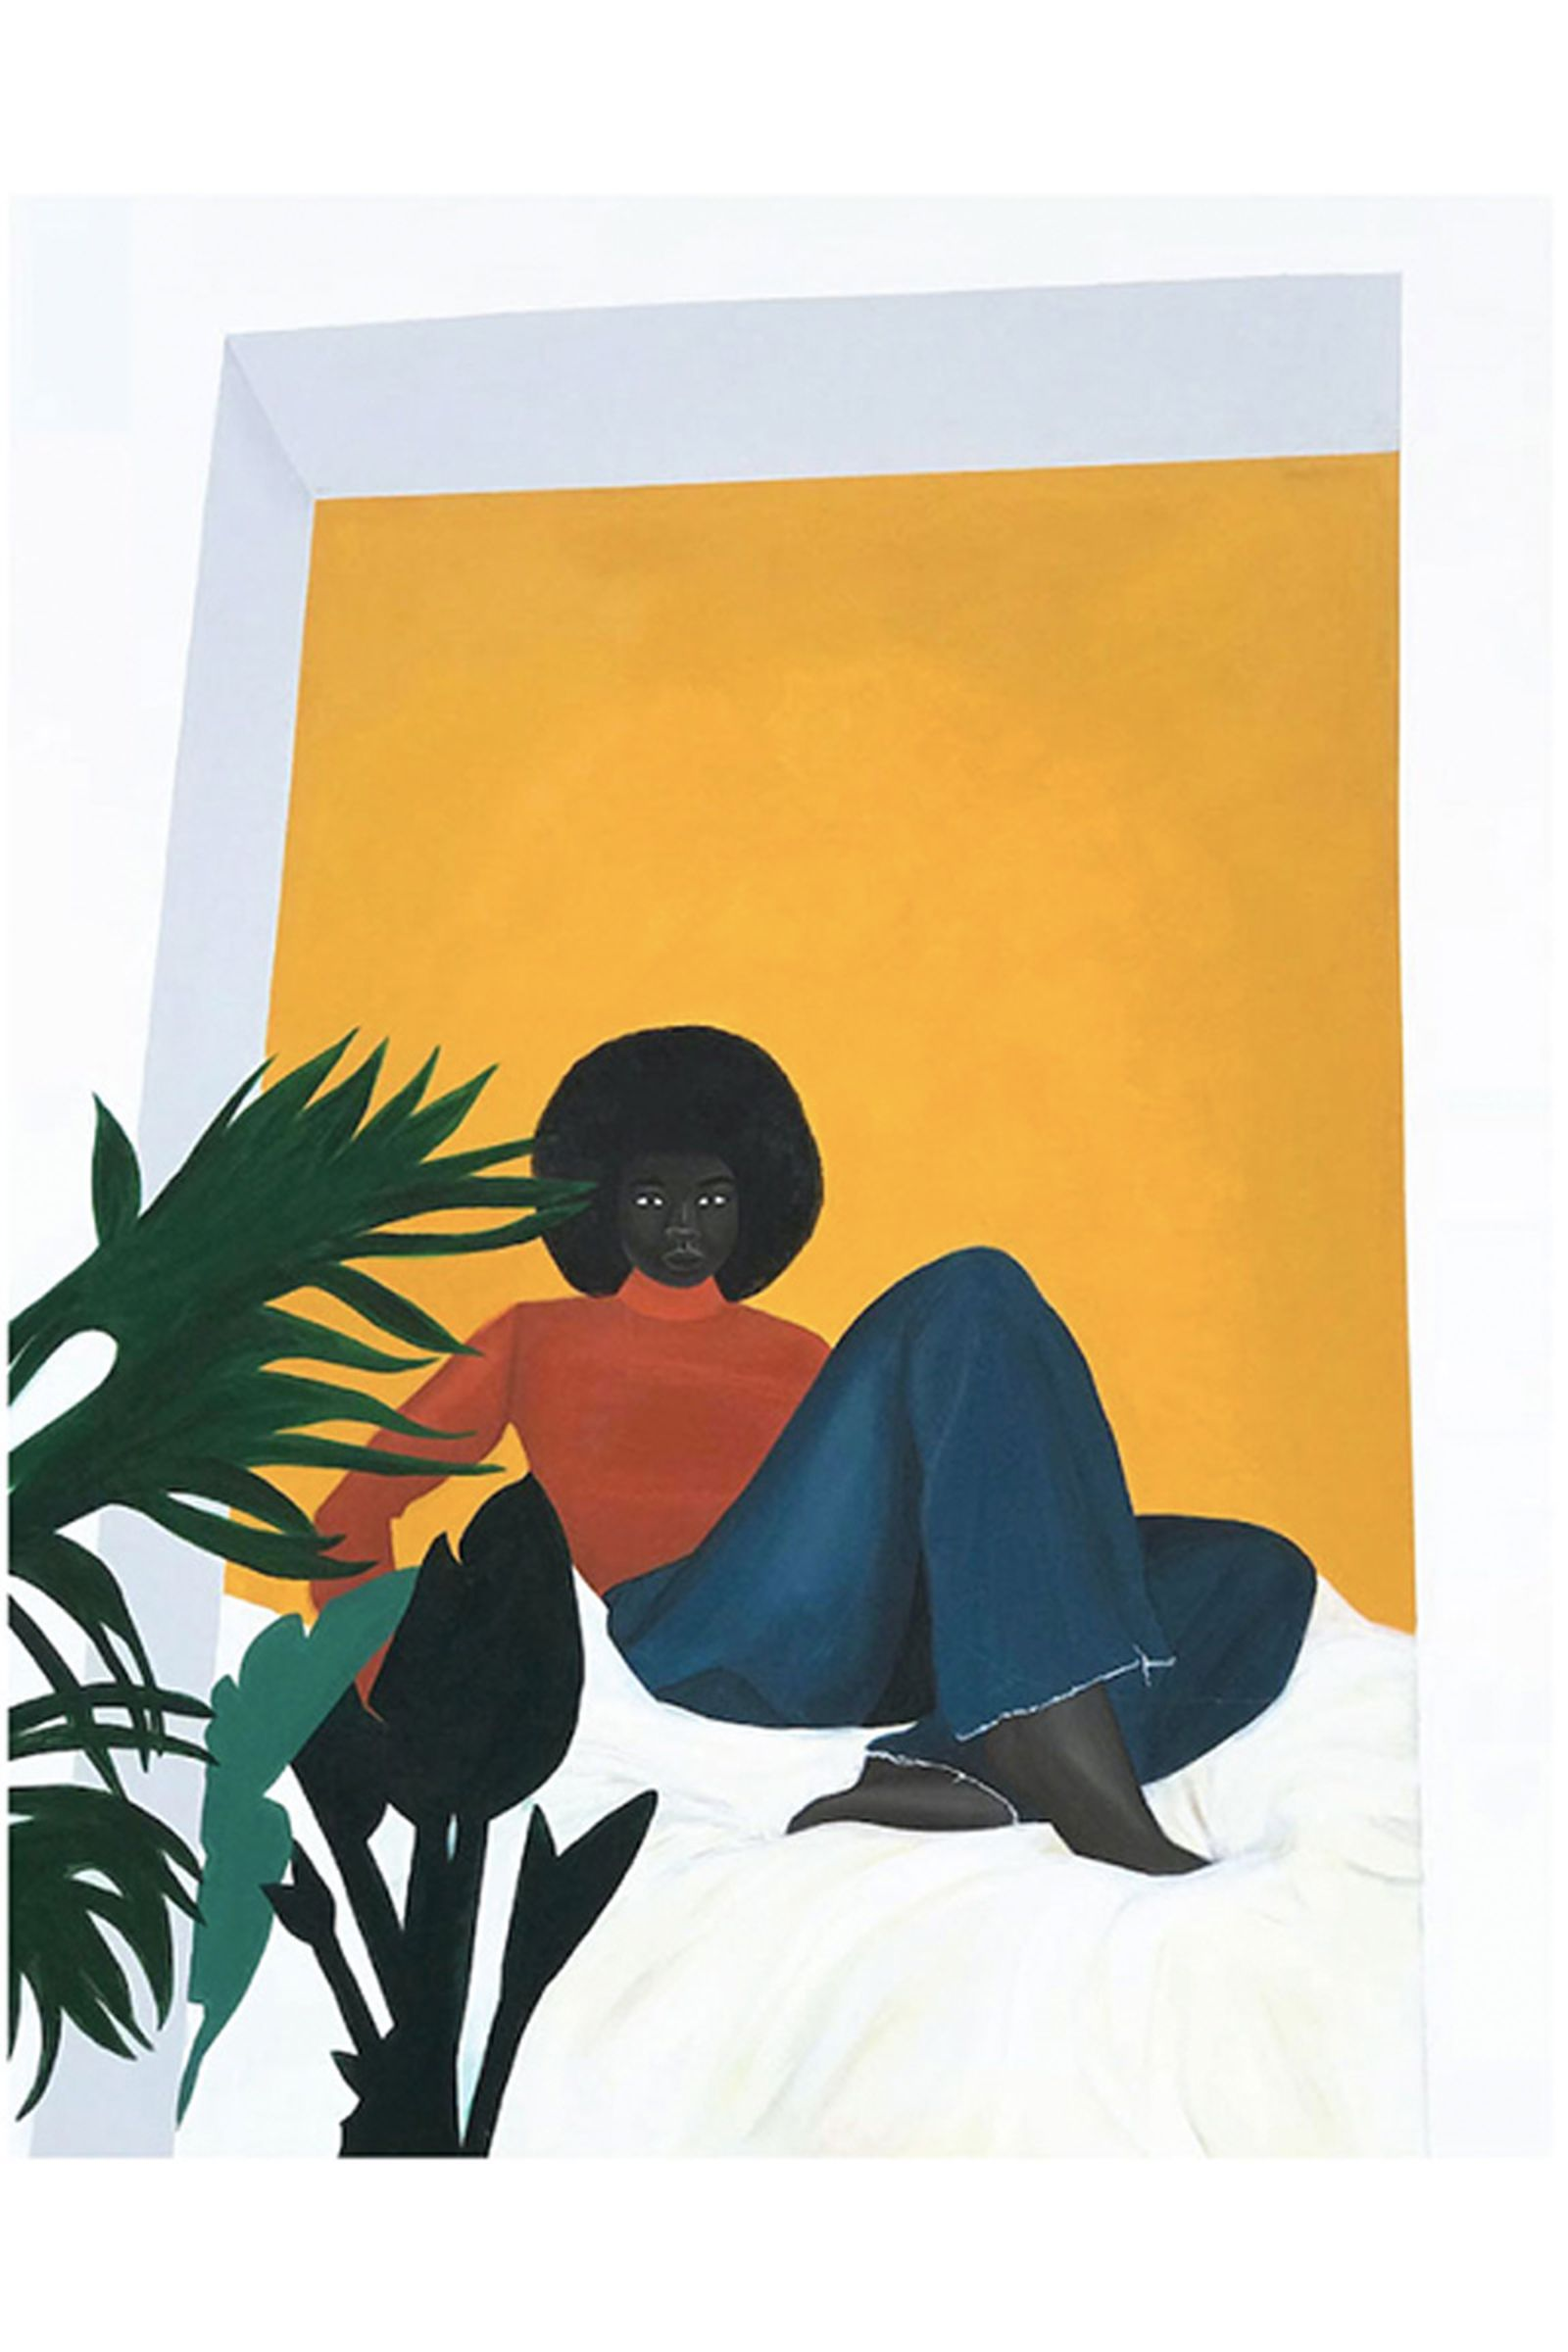 art-for-black-lives-okra-project-prints-03